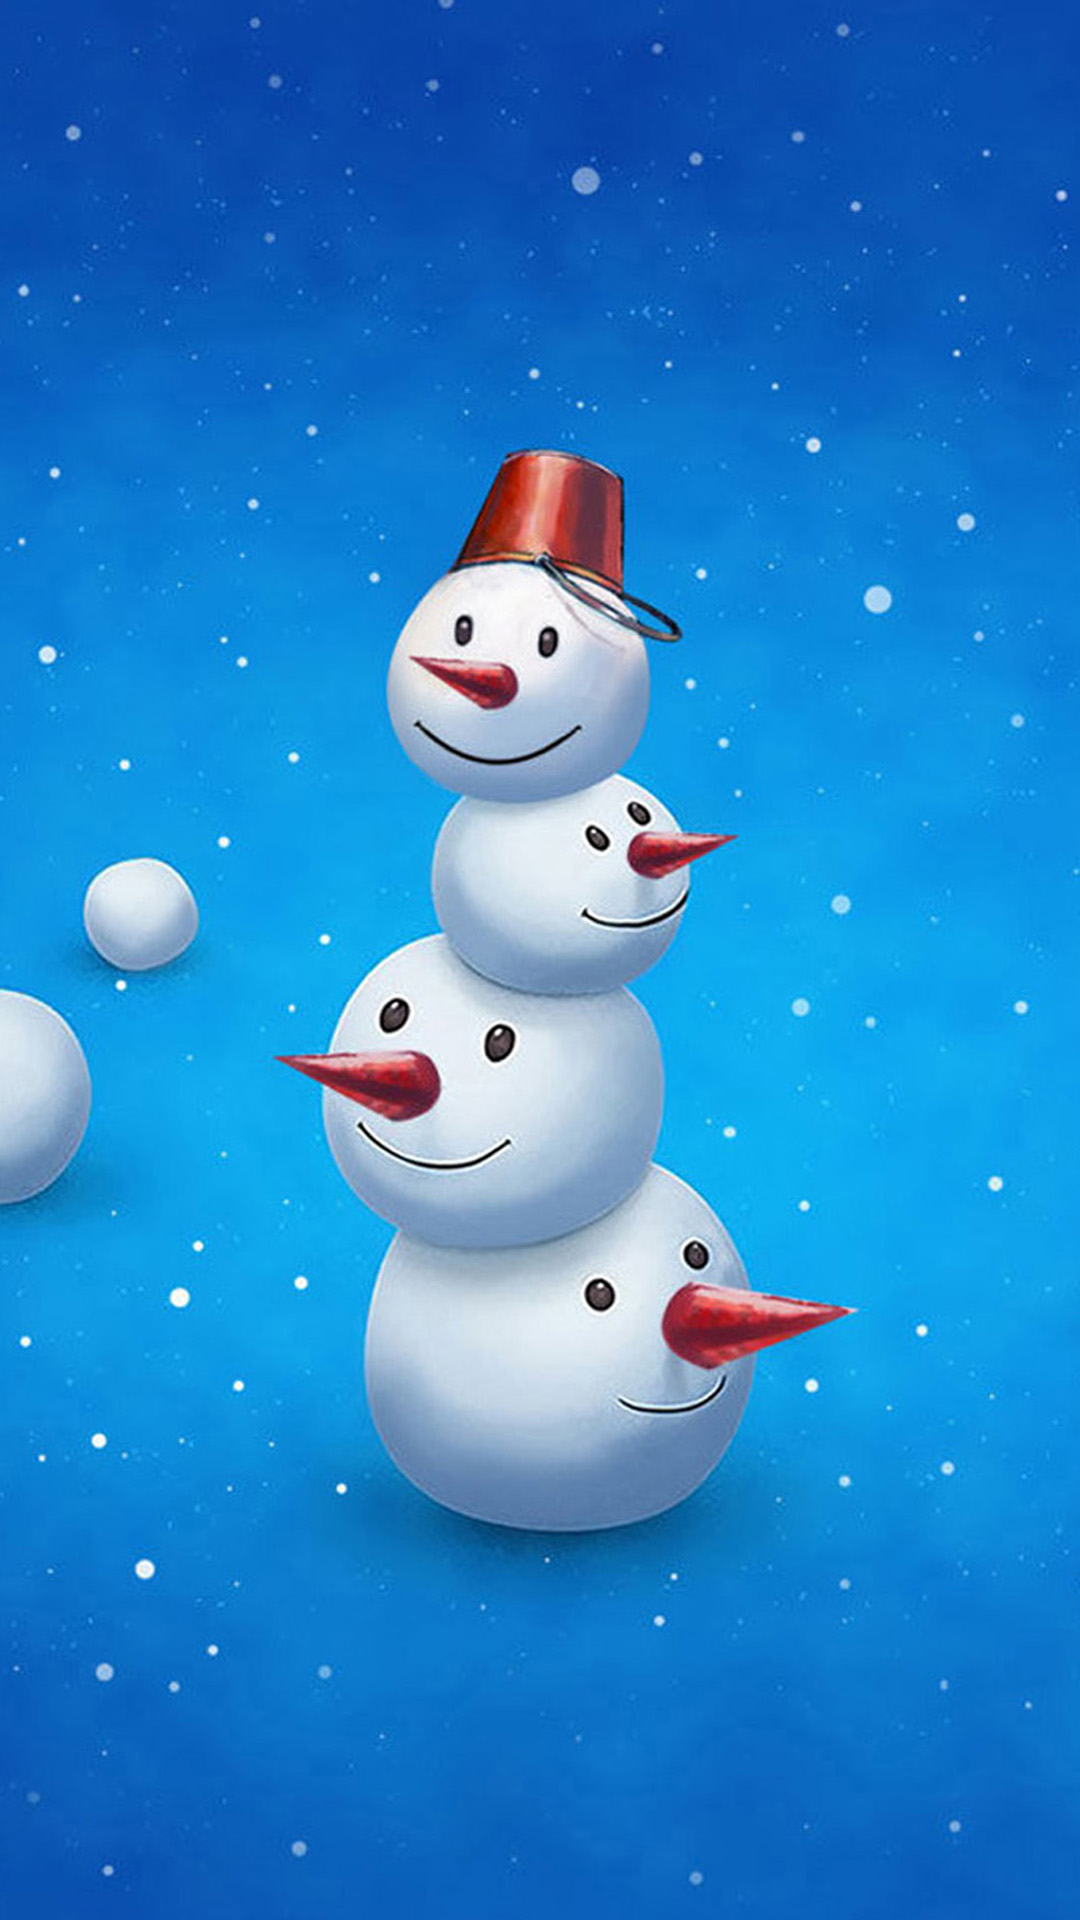 Funny Snowman Android wallpaper